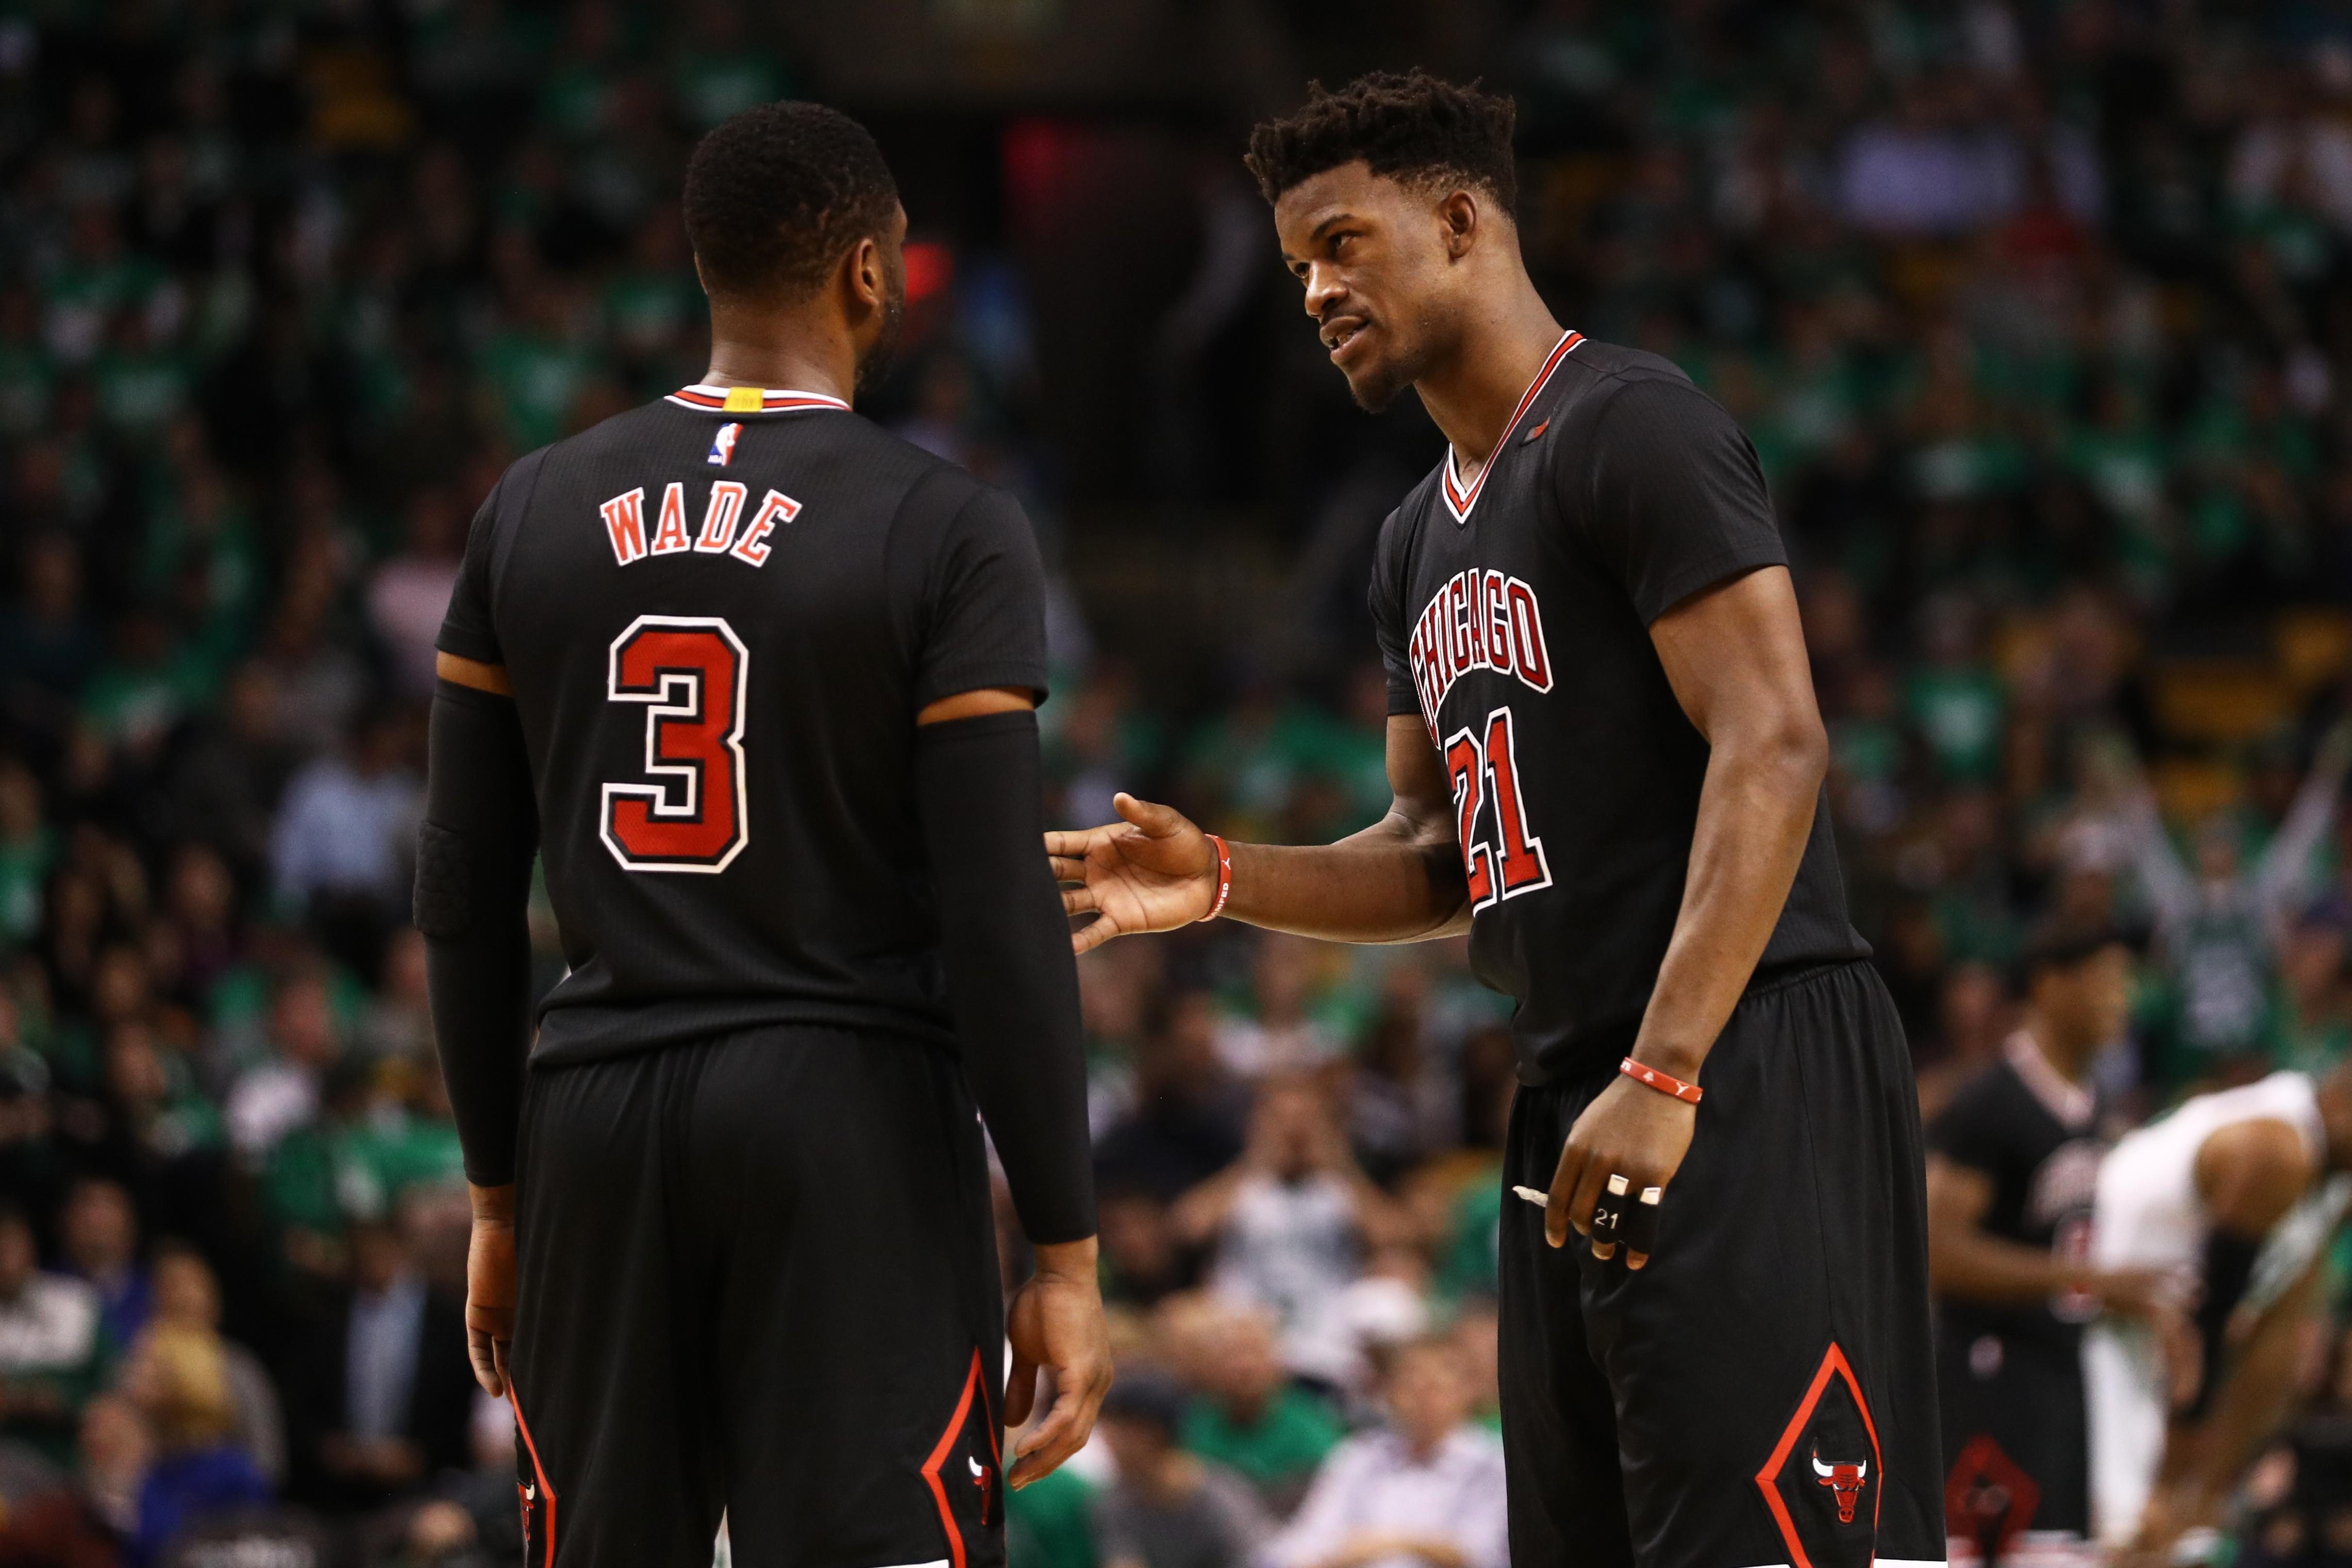 Dwyane Wade Jimmy Butler Exchange Words Over Gabrielle Union Instagram Picture